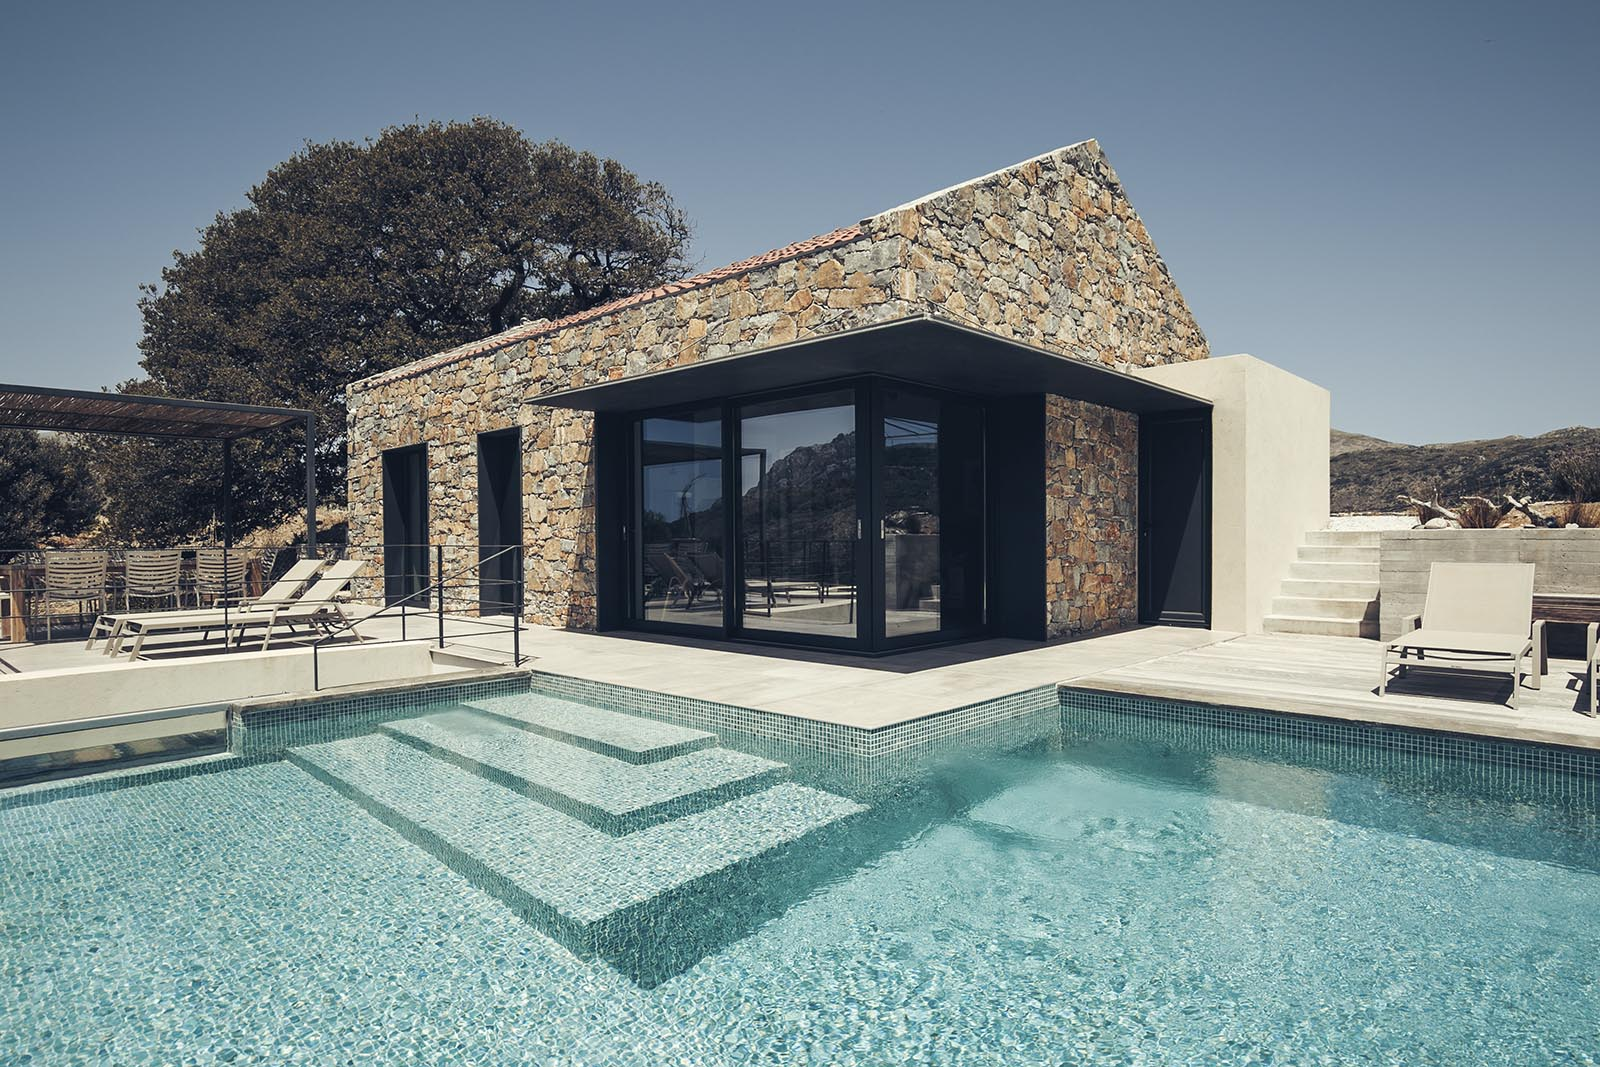 A summer house with black metal accents that contrast the stone walls.